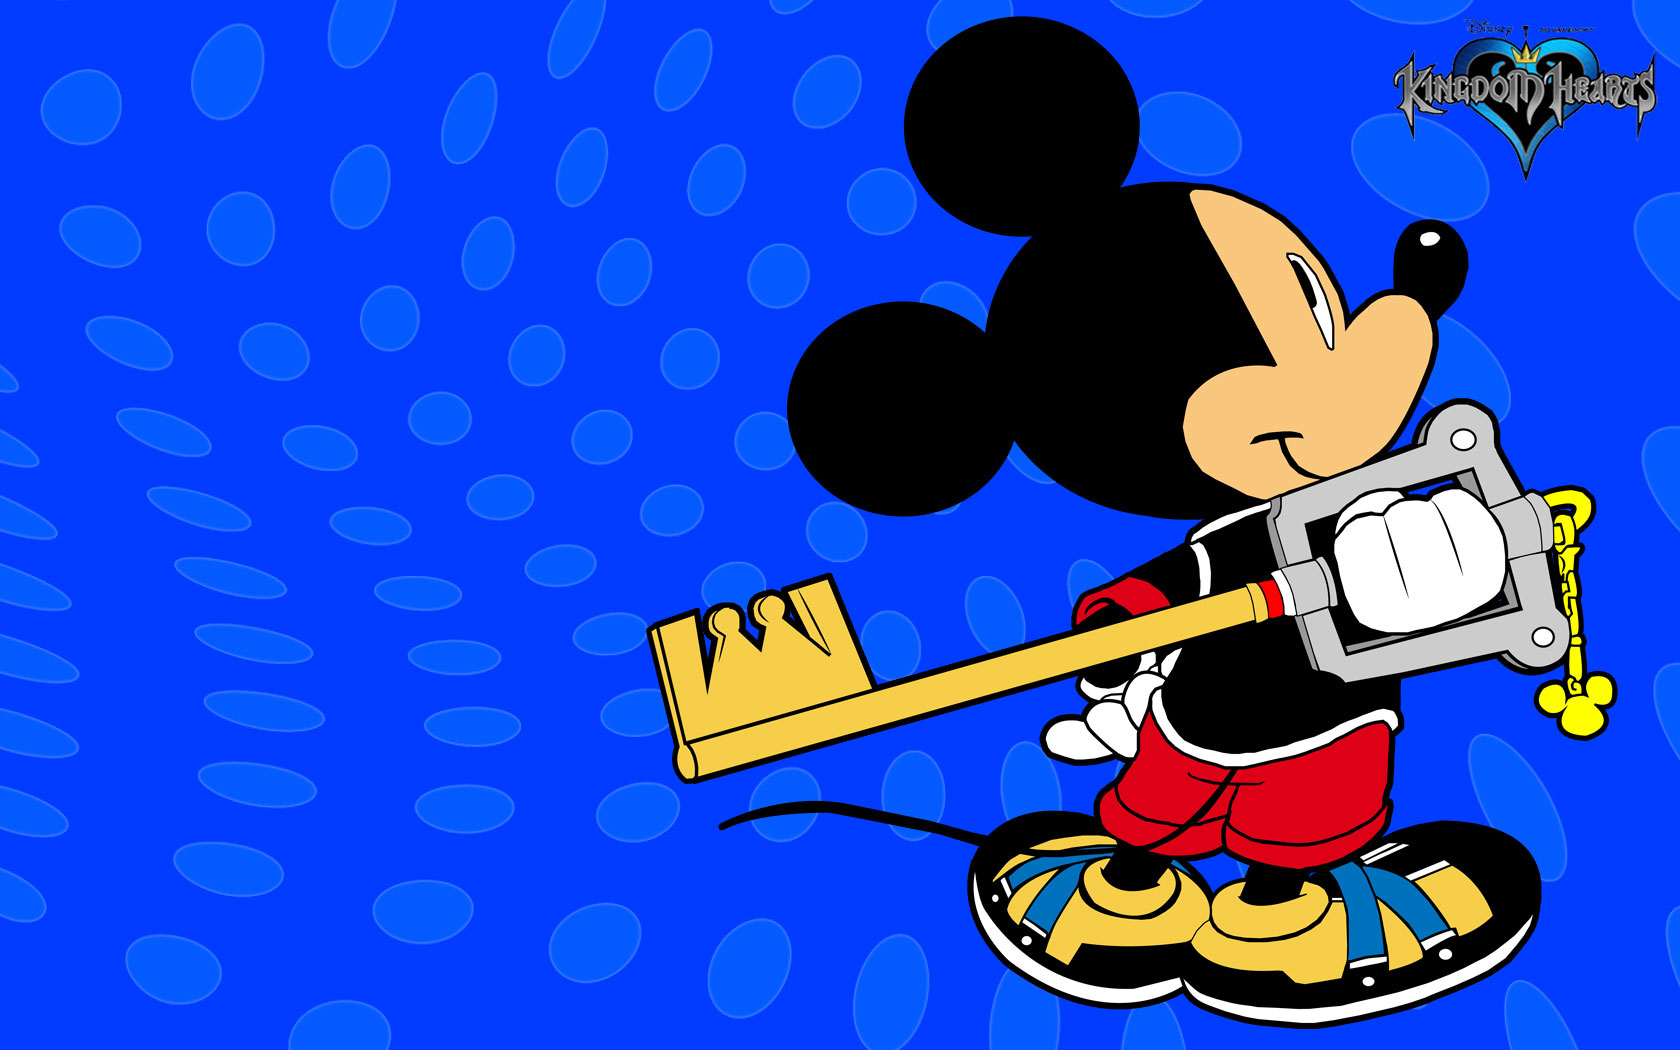 """""""Mickey Mouse Blue Wallpaper"""" — card from user lobankowa2018 in Yandex.Collections"""